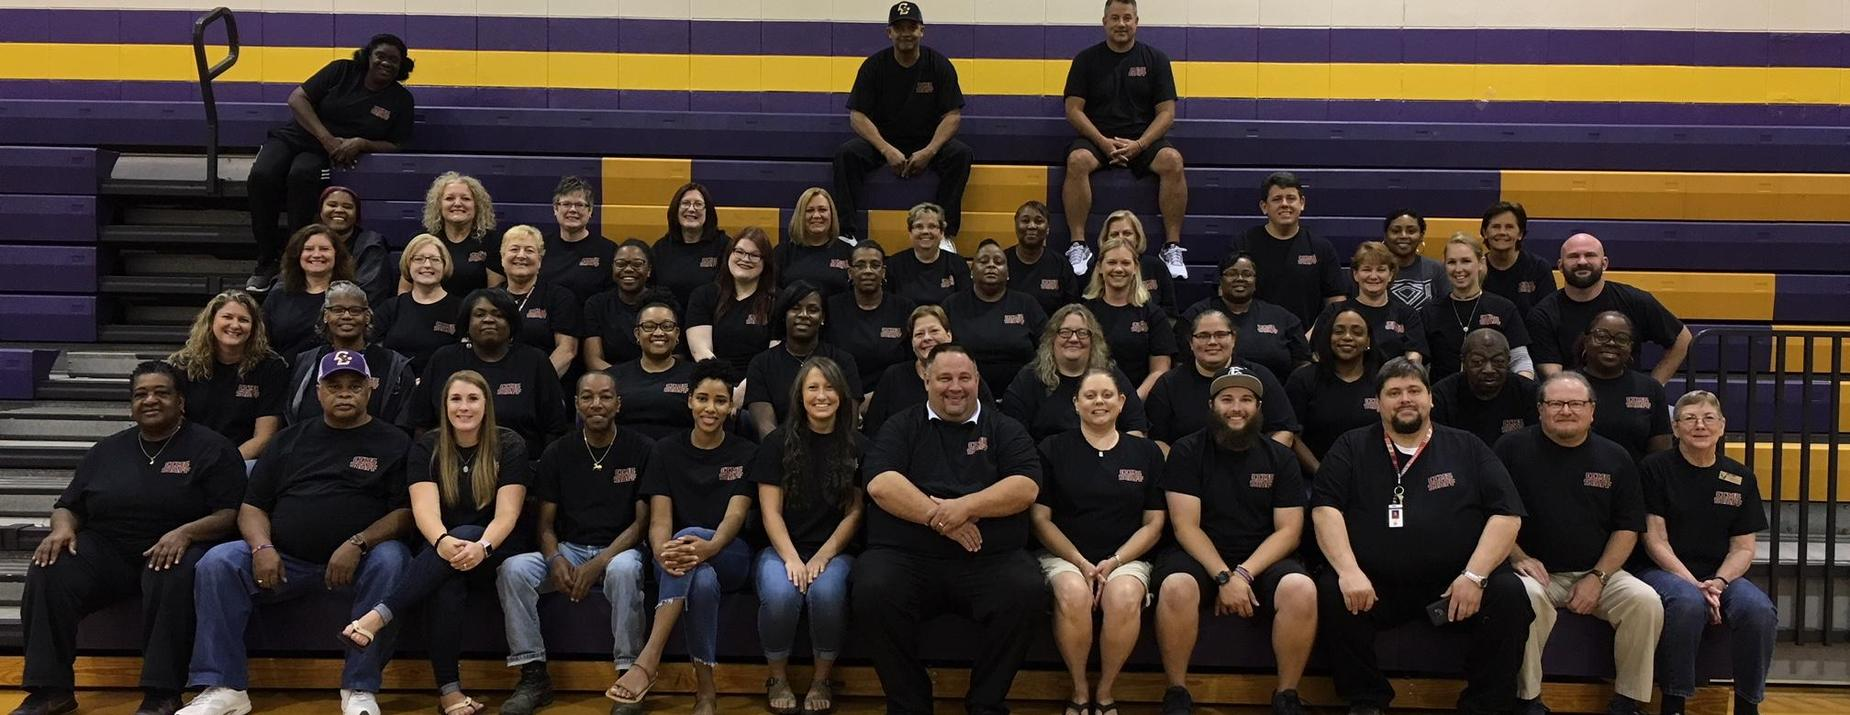 CCMS Faculty & Staff